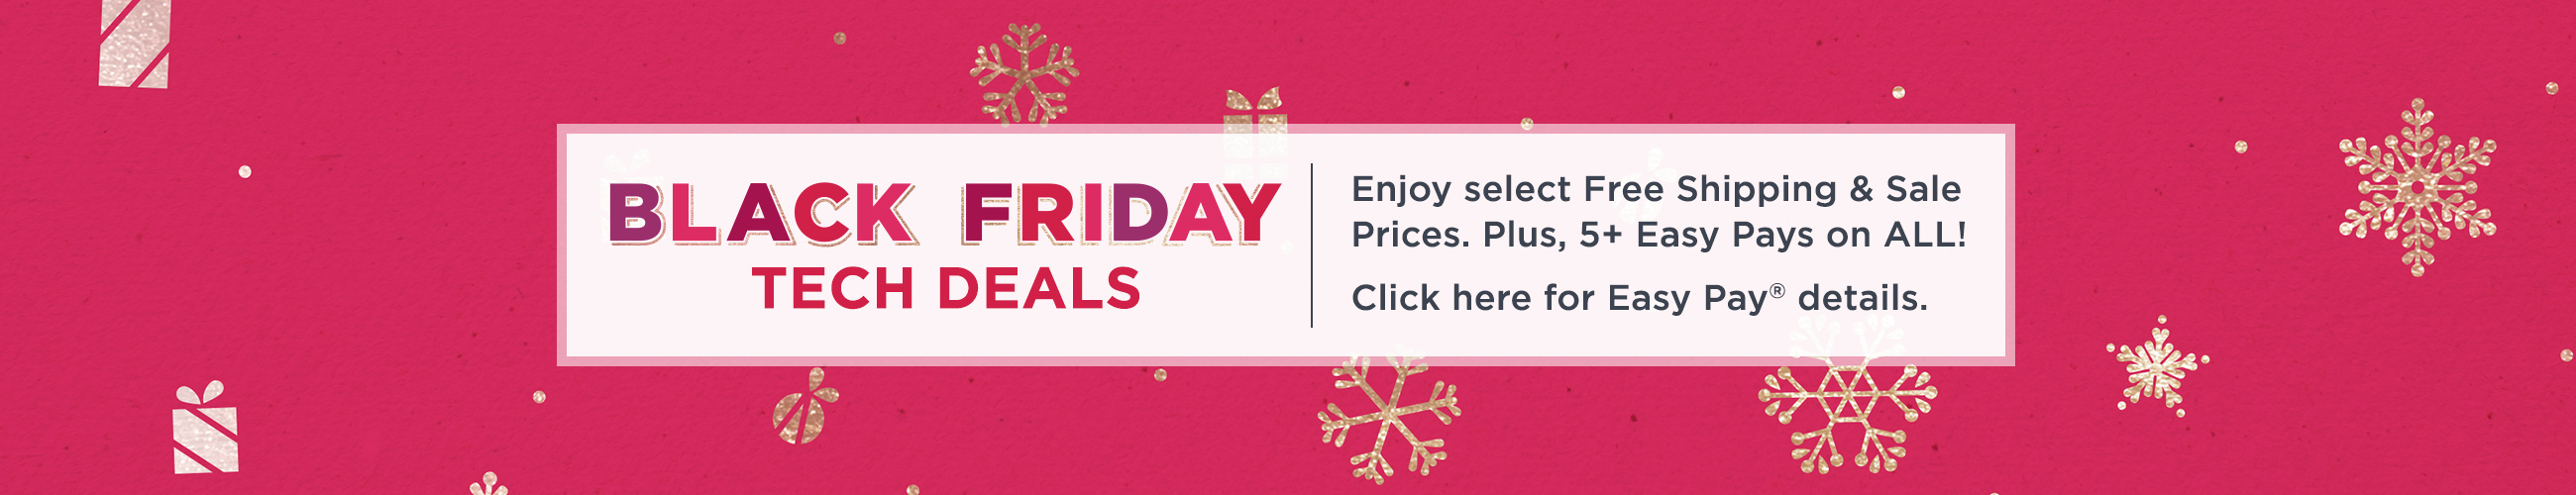 Black Friday Tech Deals.  Enjoy select Free Shipping & Sale Prices. Plus, 5+ Easy Pays on ALL!  Click here for Easy Pay® details.